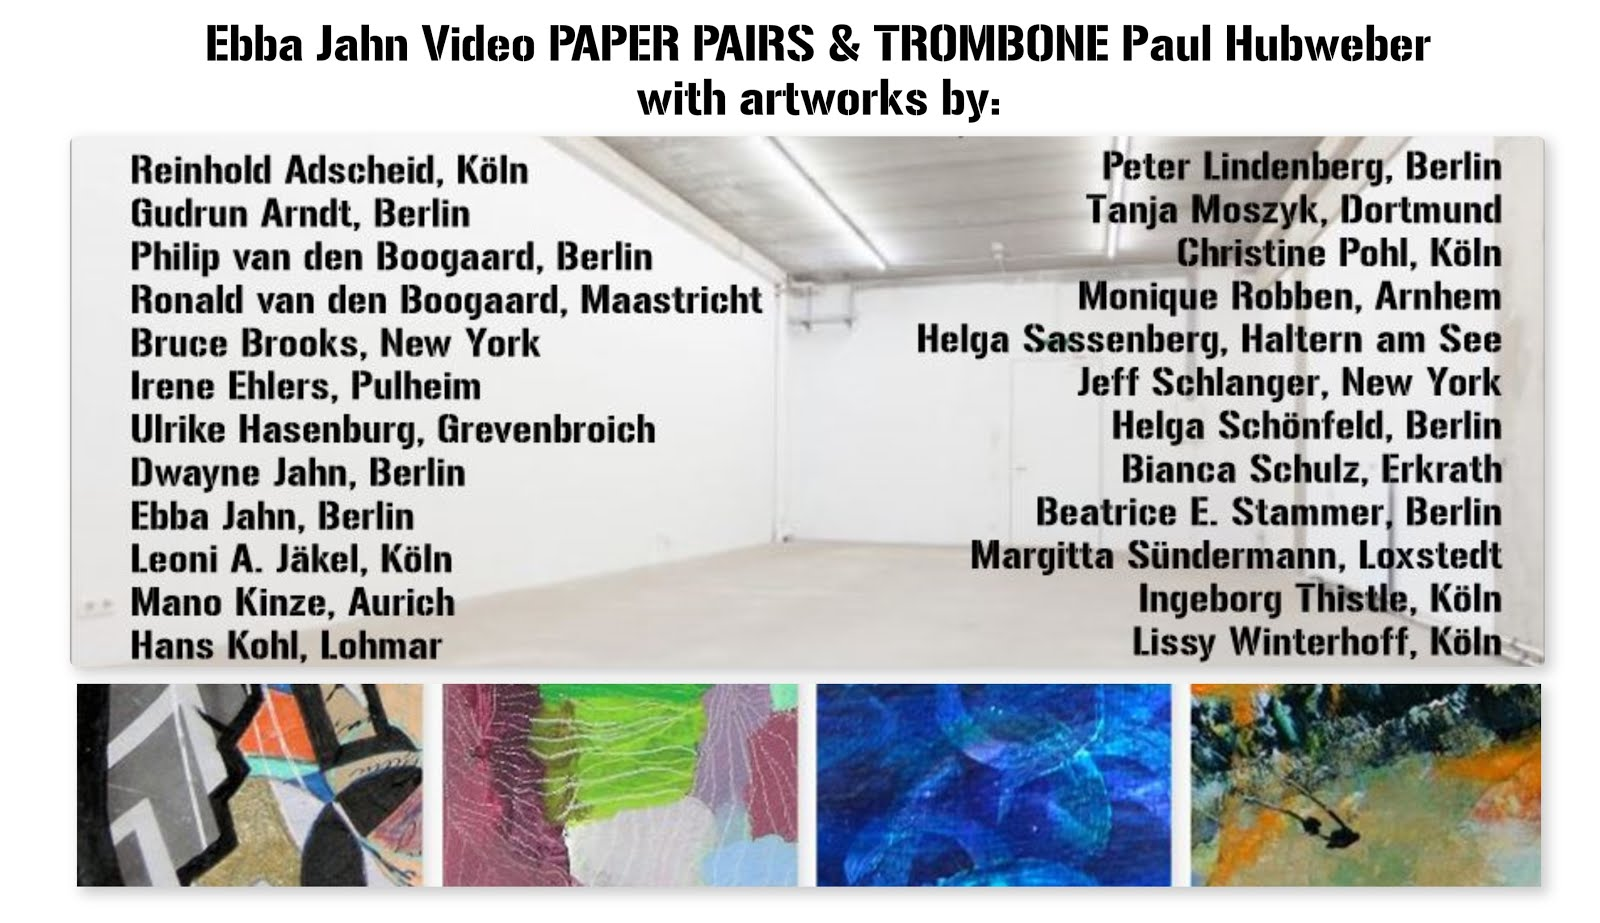 PAPER PAIRS Artworks in the Video by: